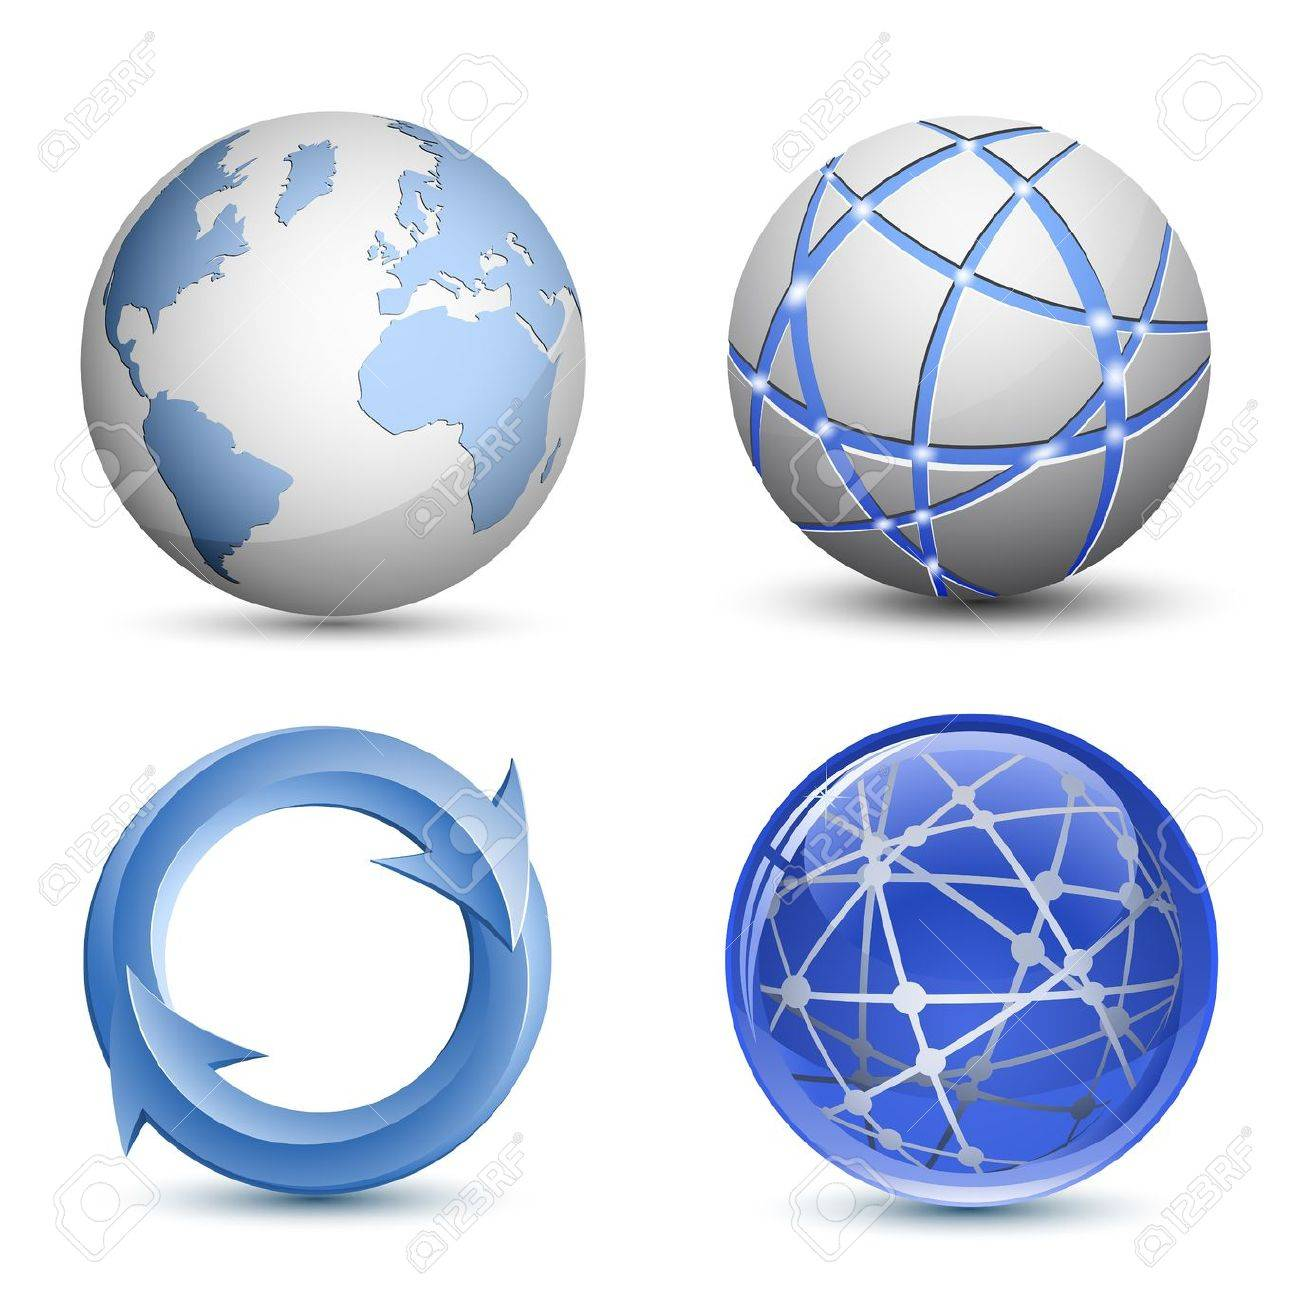 Abstract Globe Icons Set. Vector Illustration Stock Vector - 9933315